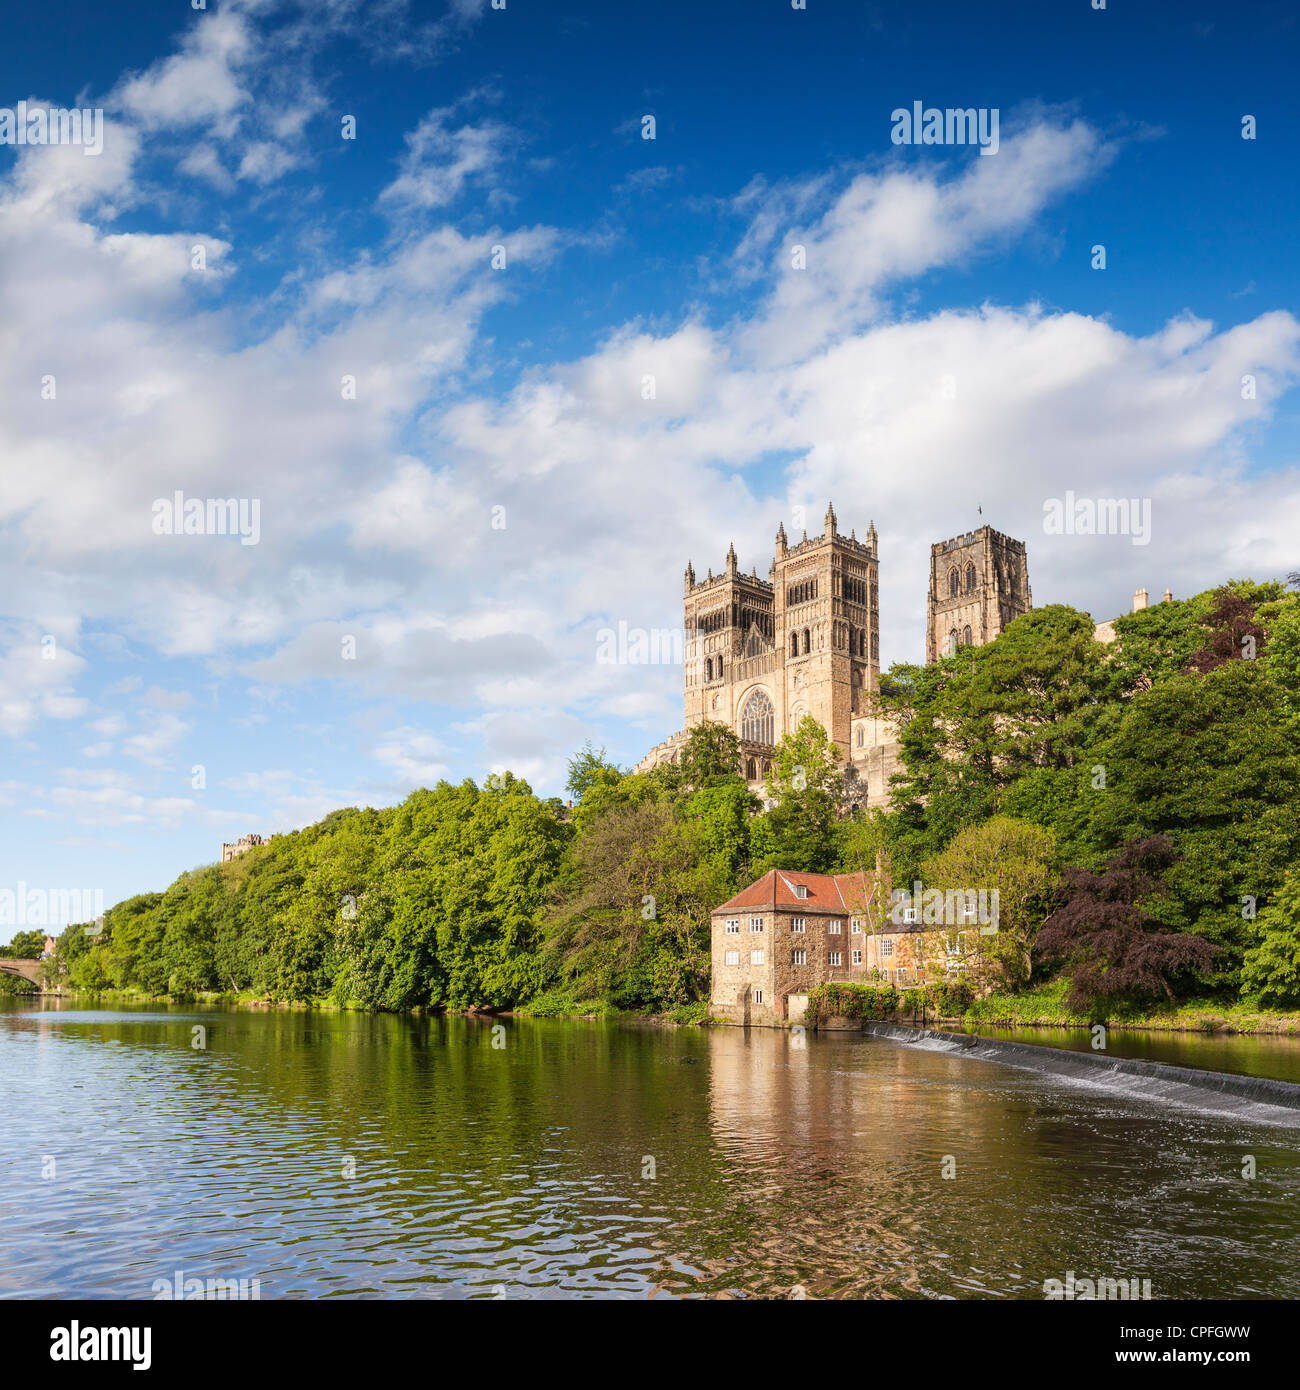 Durham Cathedral, on its rocky outcrop above the River Wear, in County Durham, England. Stock Photo